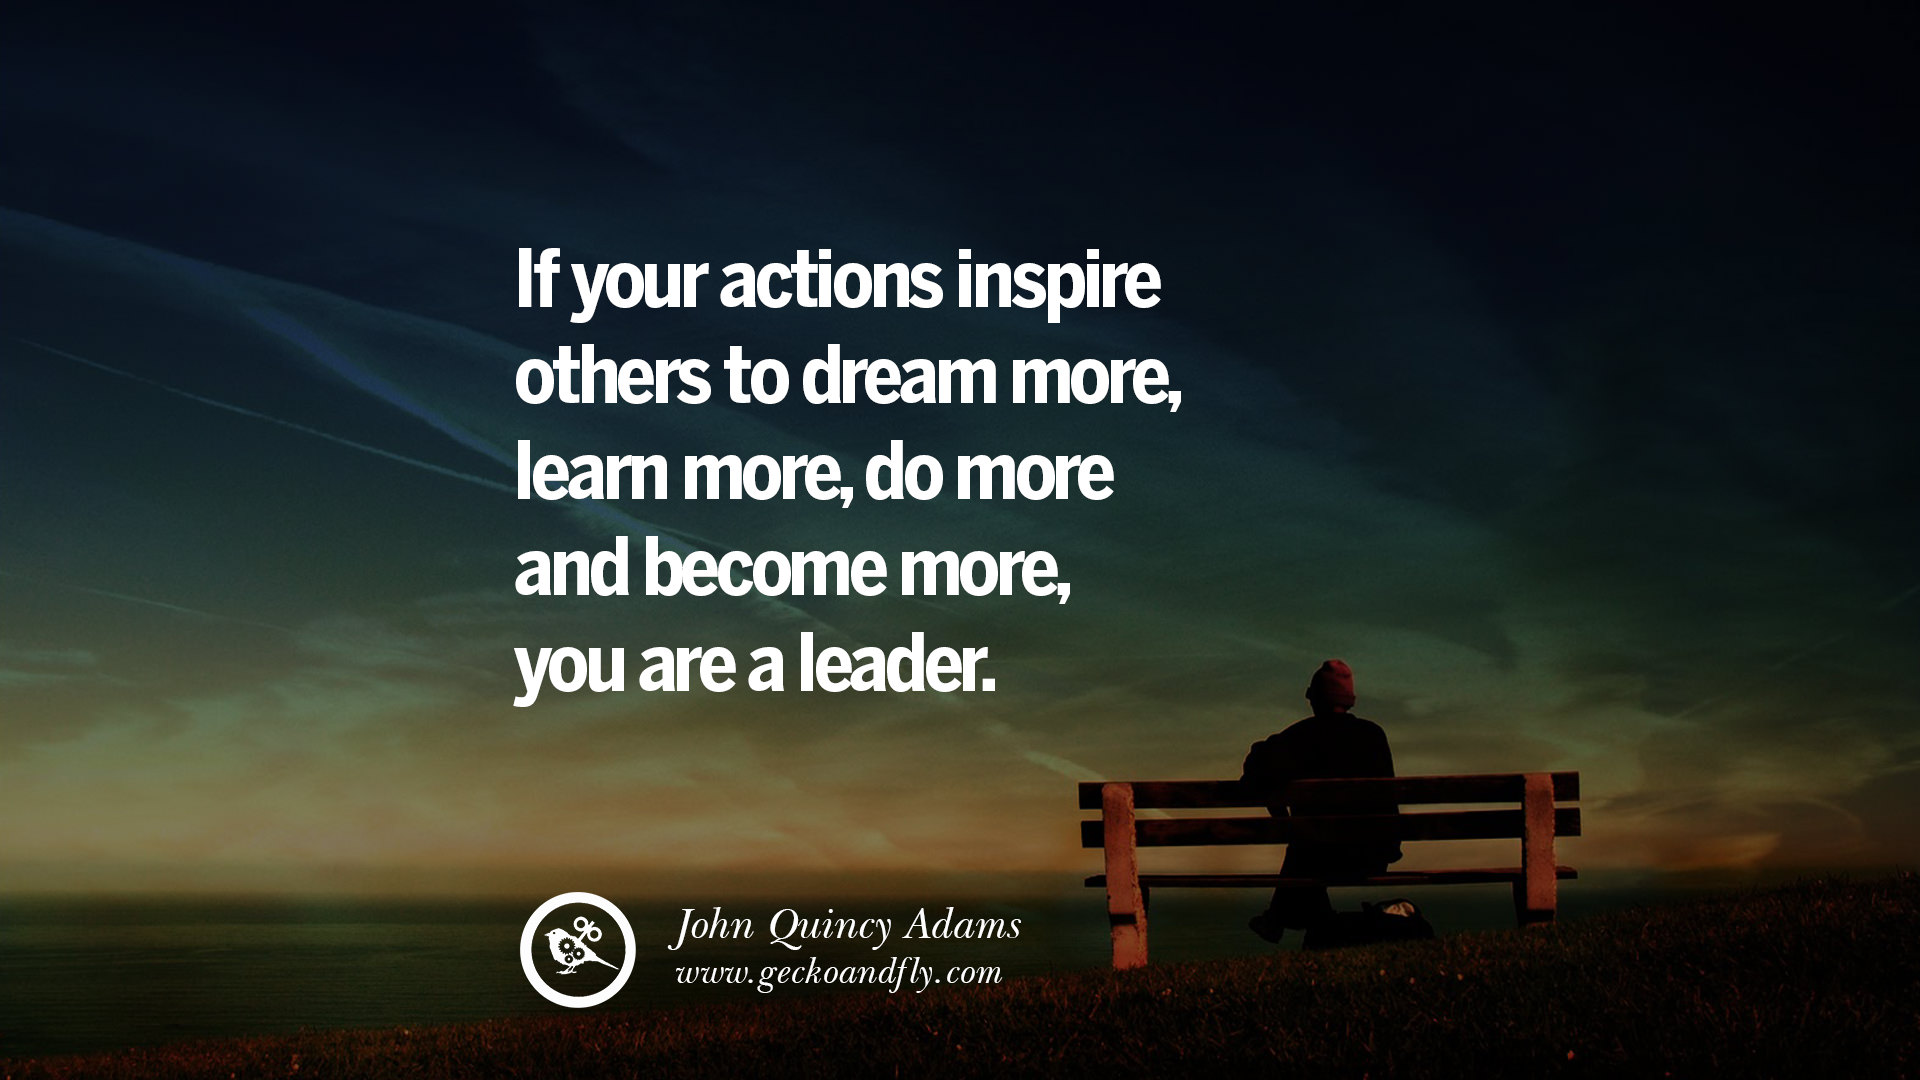 18 uplifting and motivational quotes on management leadership if your actions inspire others to dream more learn more do more and become more you are a leader